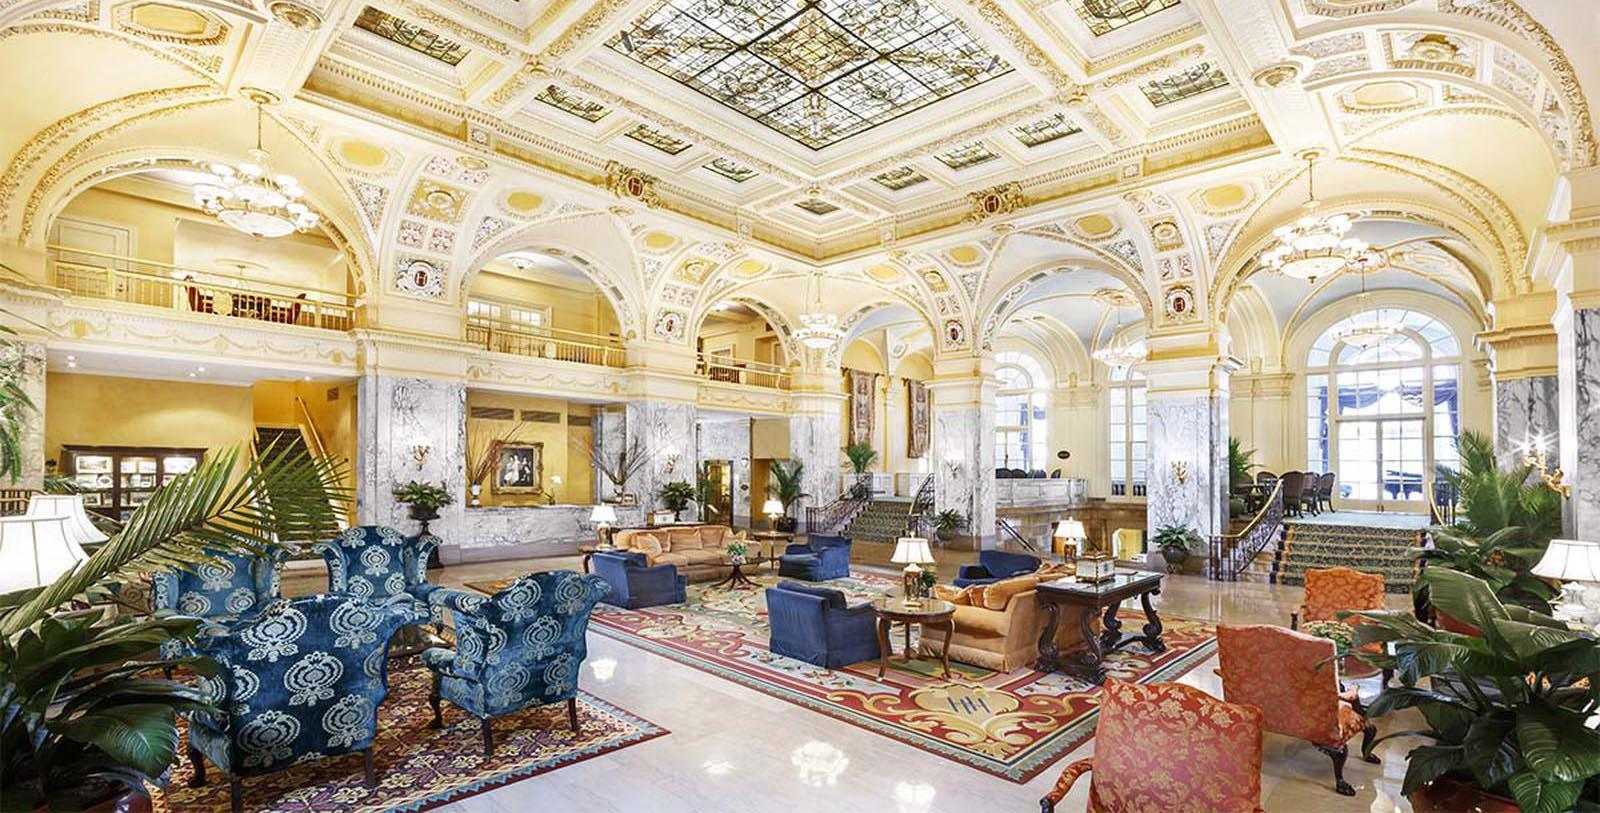 Image of Lobby The Hermitage Hotel, 1910, Member of Historic Hotels of America, in Nashville, Tennessee, Discover